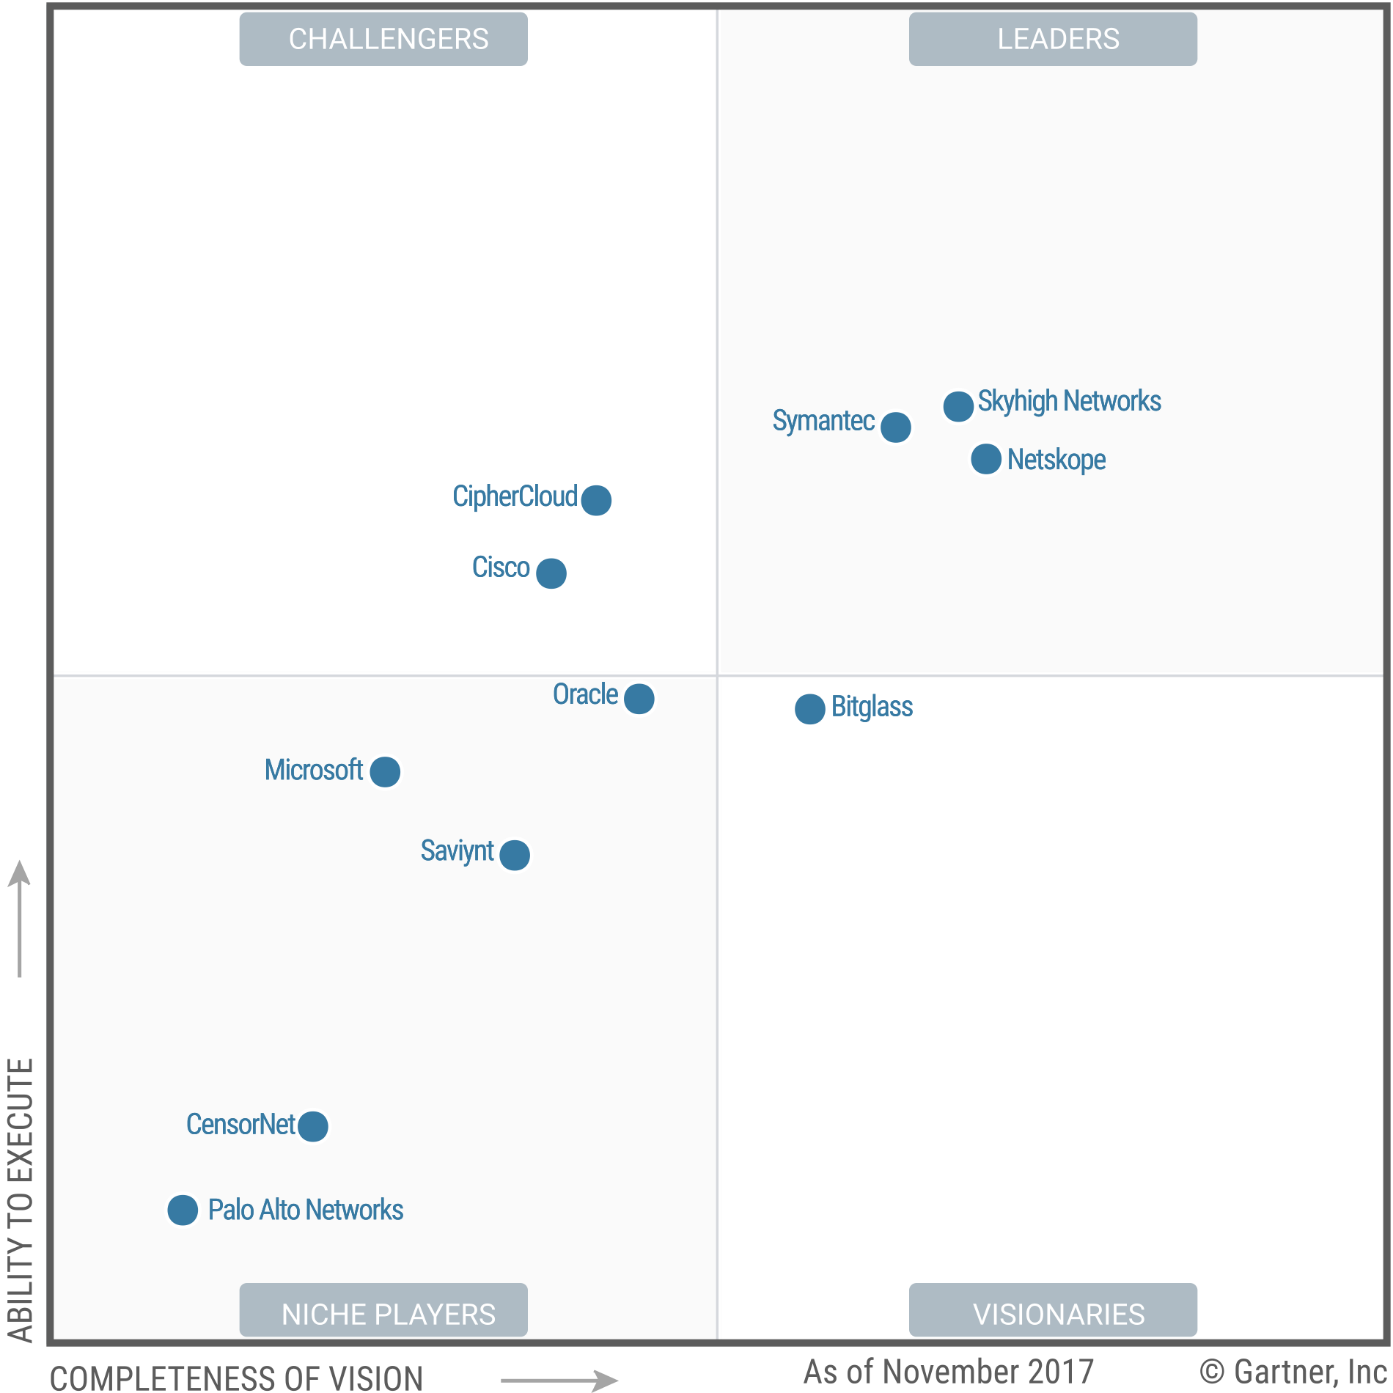 Magic Quadrant for Cloud Access Security Brokers 2017 (G00318532)